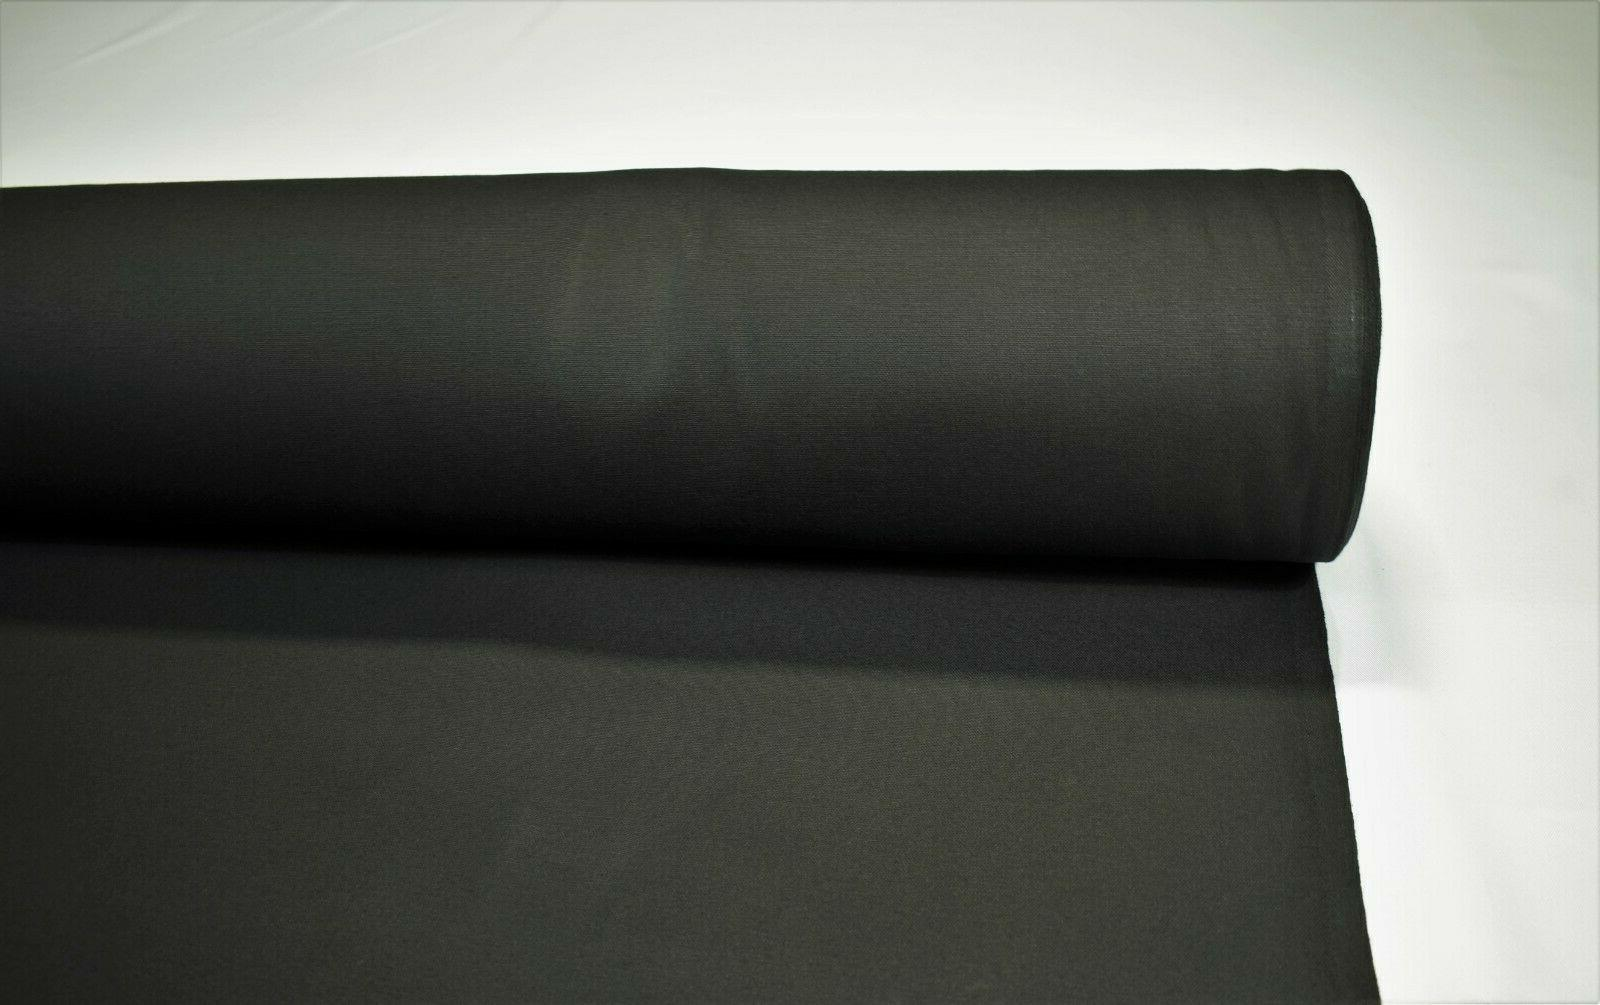 Black 100% Water Duck 10 Upholstery